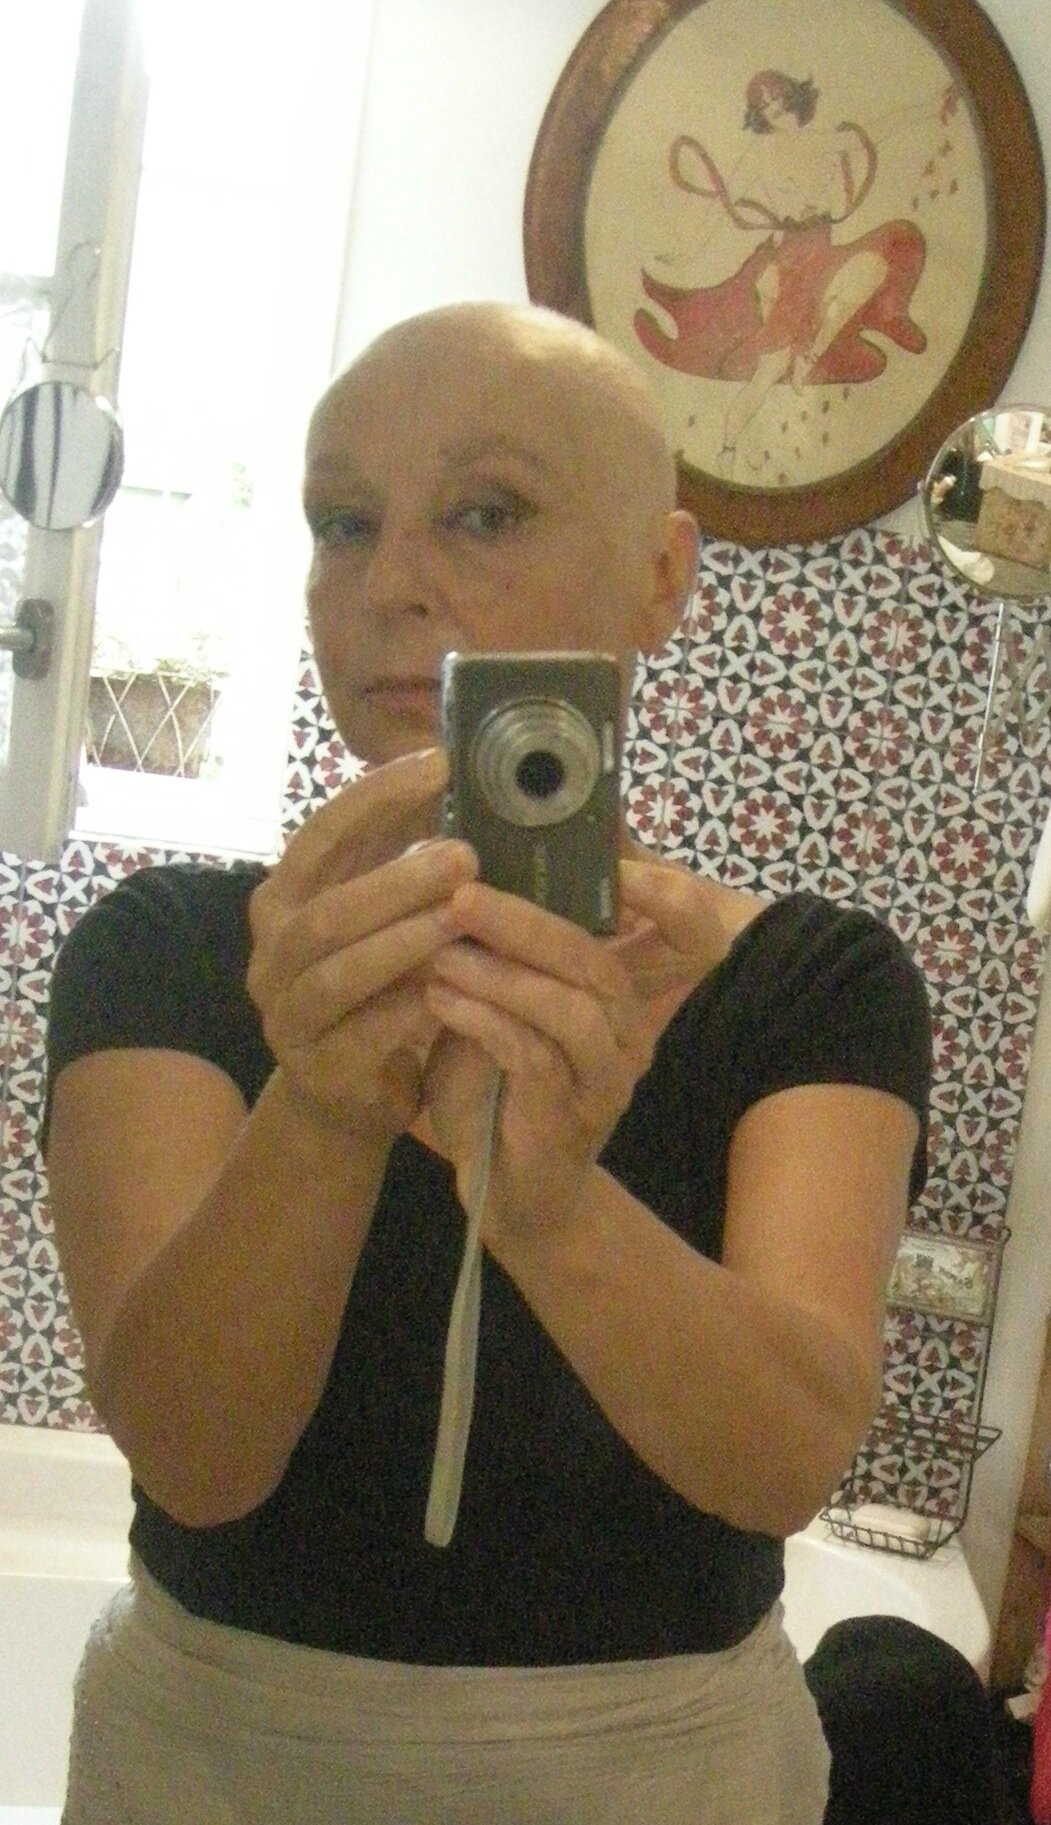 Chambre Stérile Cancer Quotintermède Cancer Quot Odile Layous Dit Chicoy